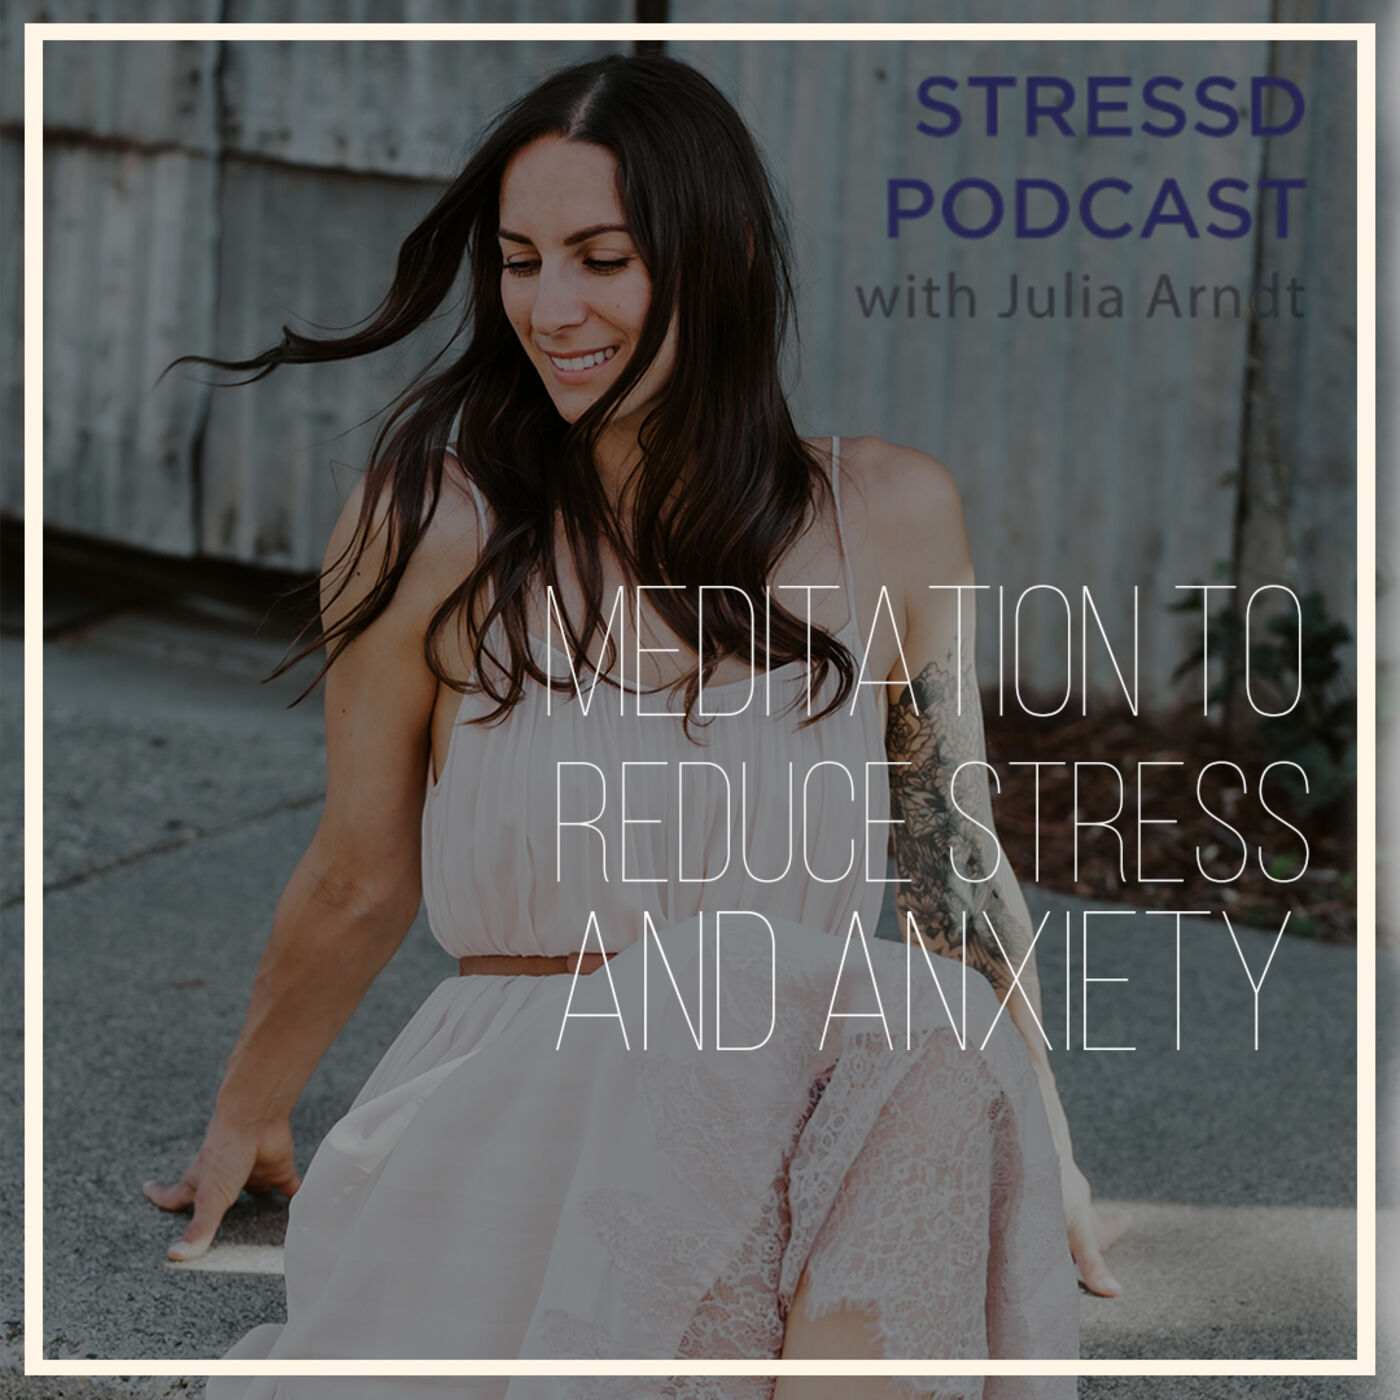 Meditation to Lower Stress And Anxiety